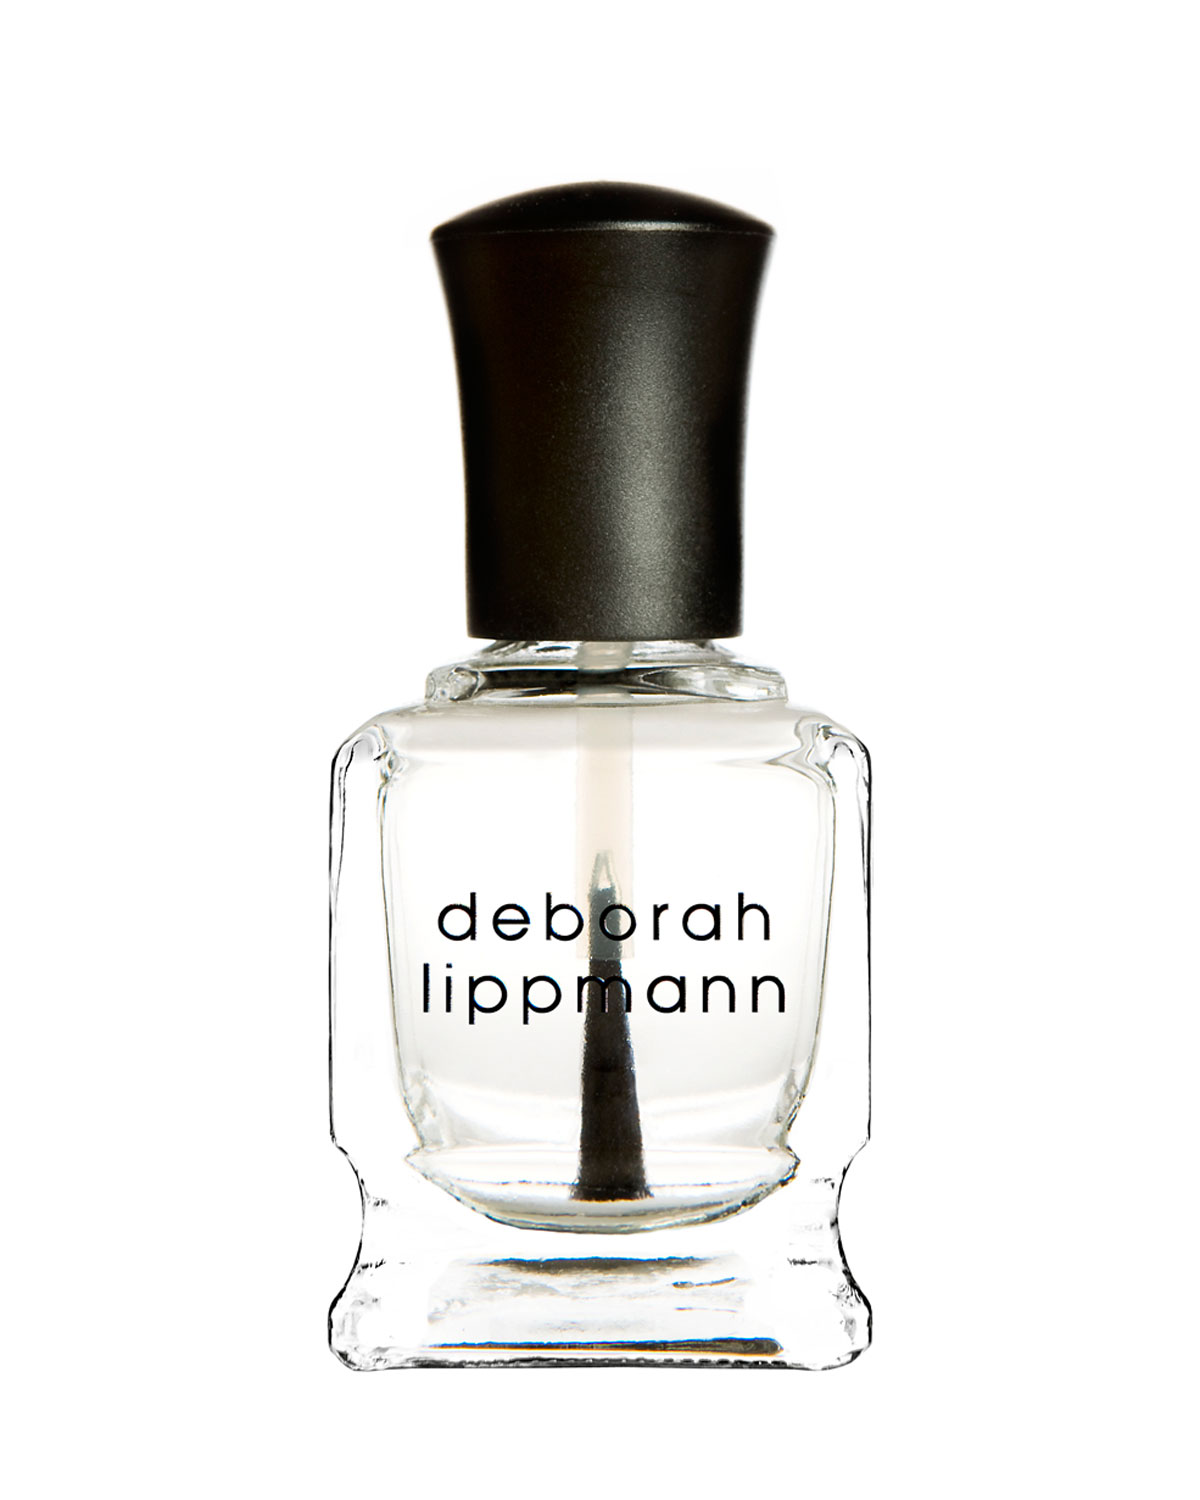 Deborah Lippmann ADDICTED TO SPEED ULTRA QUICK-DRY TOP COAT